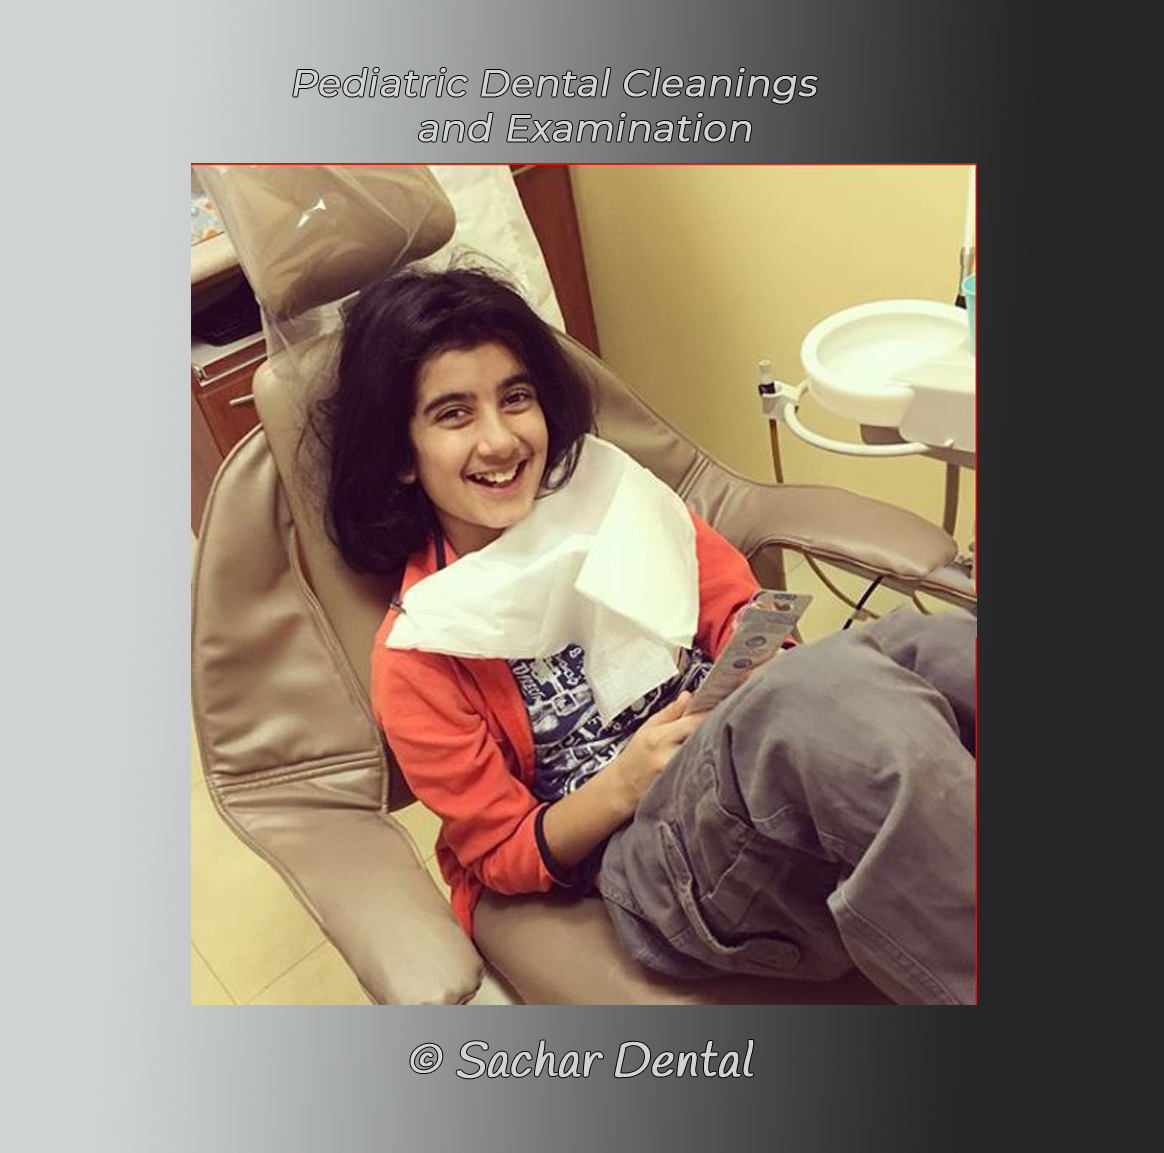 Picture of pediatric patient smiling in the dental chair